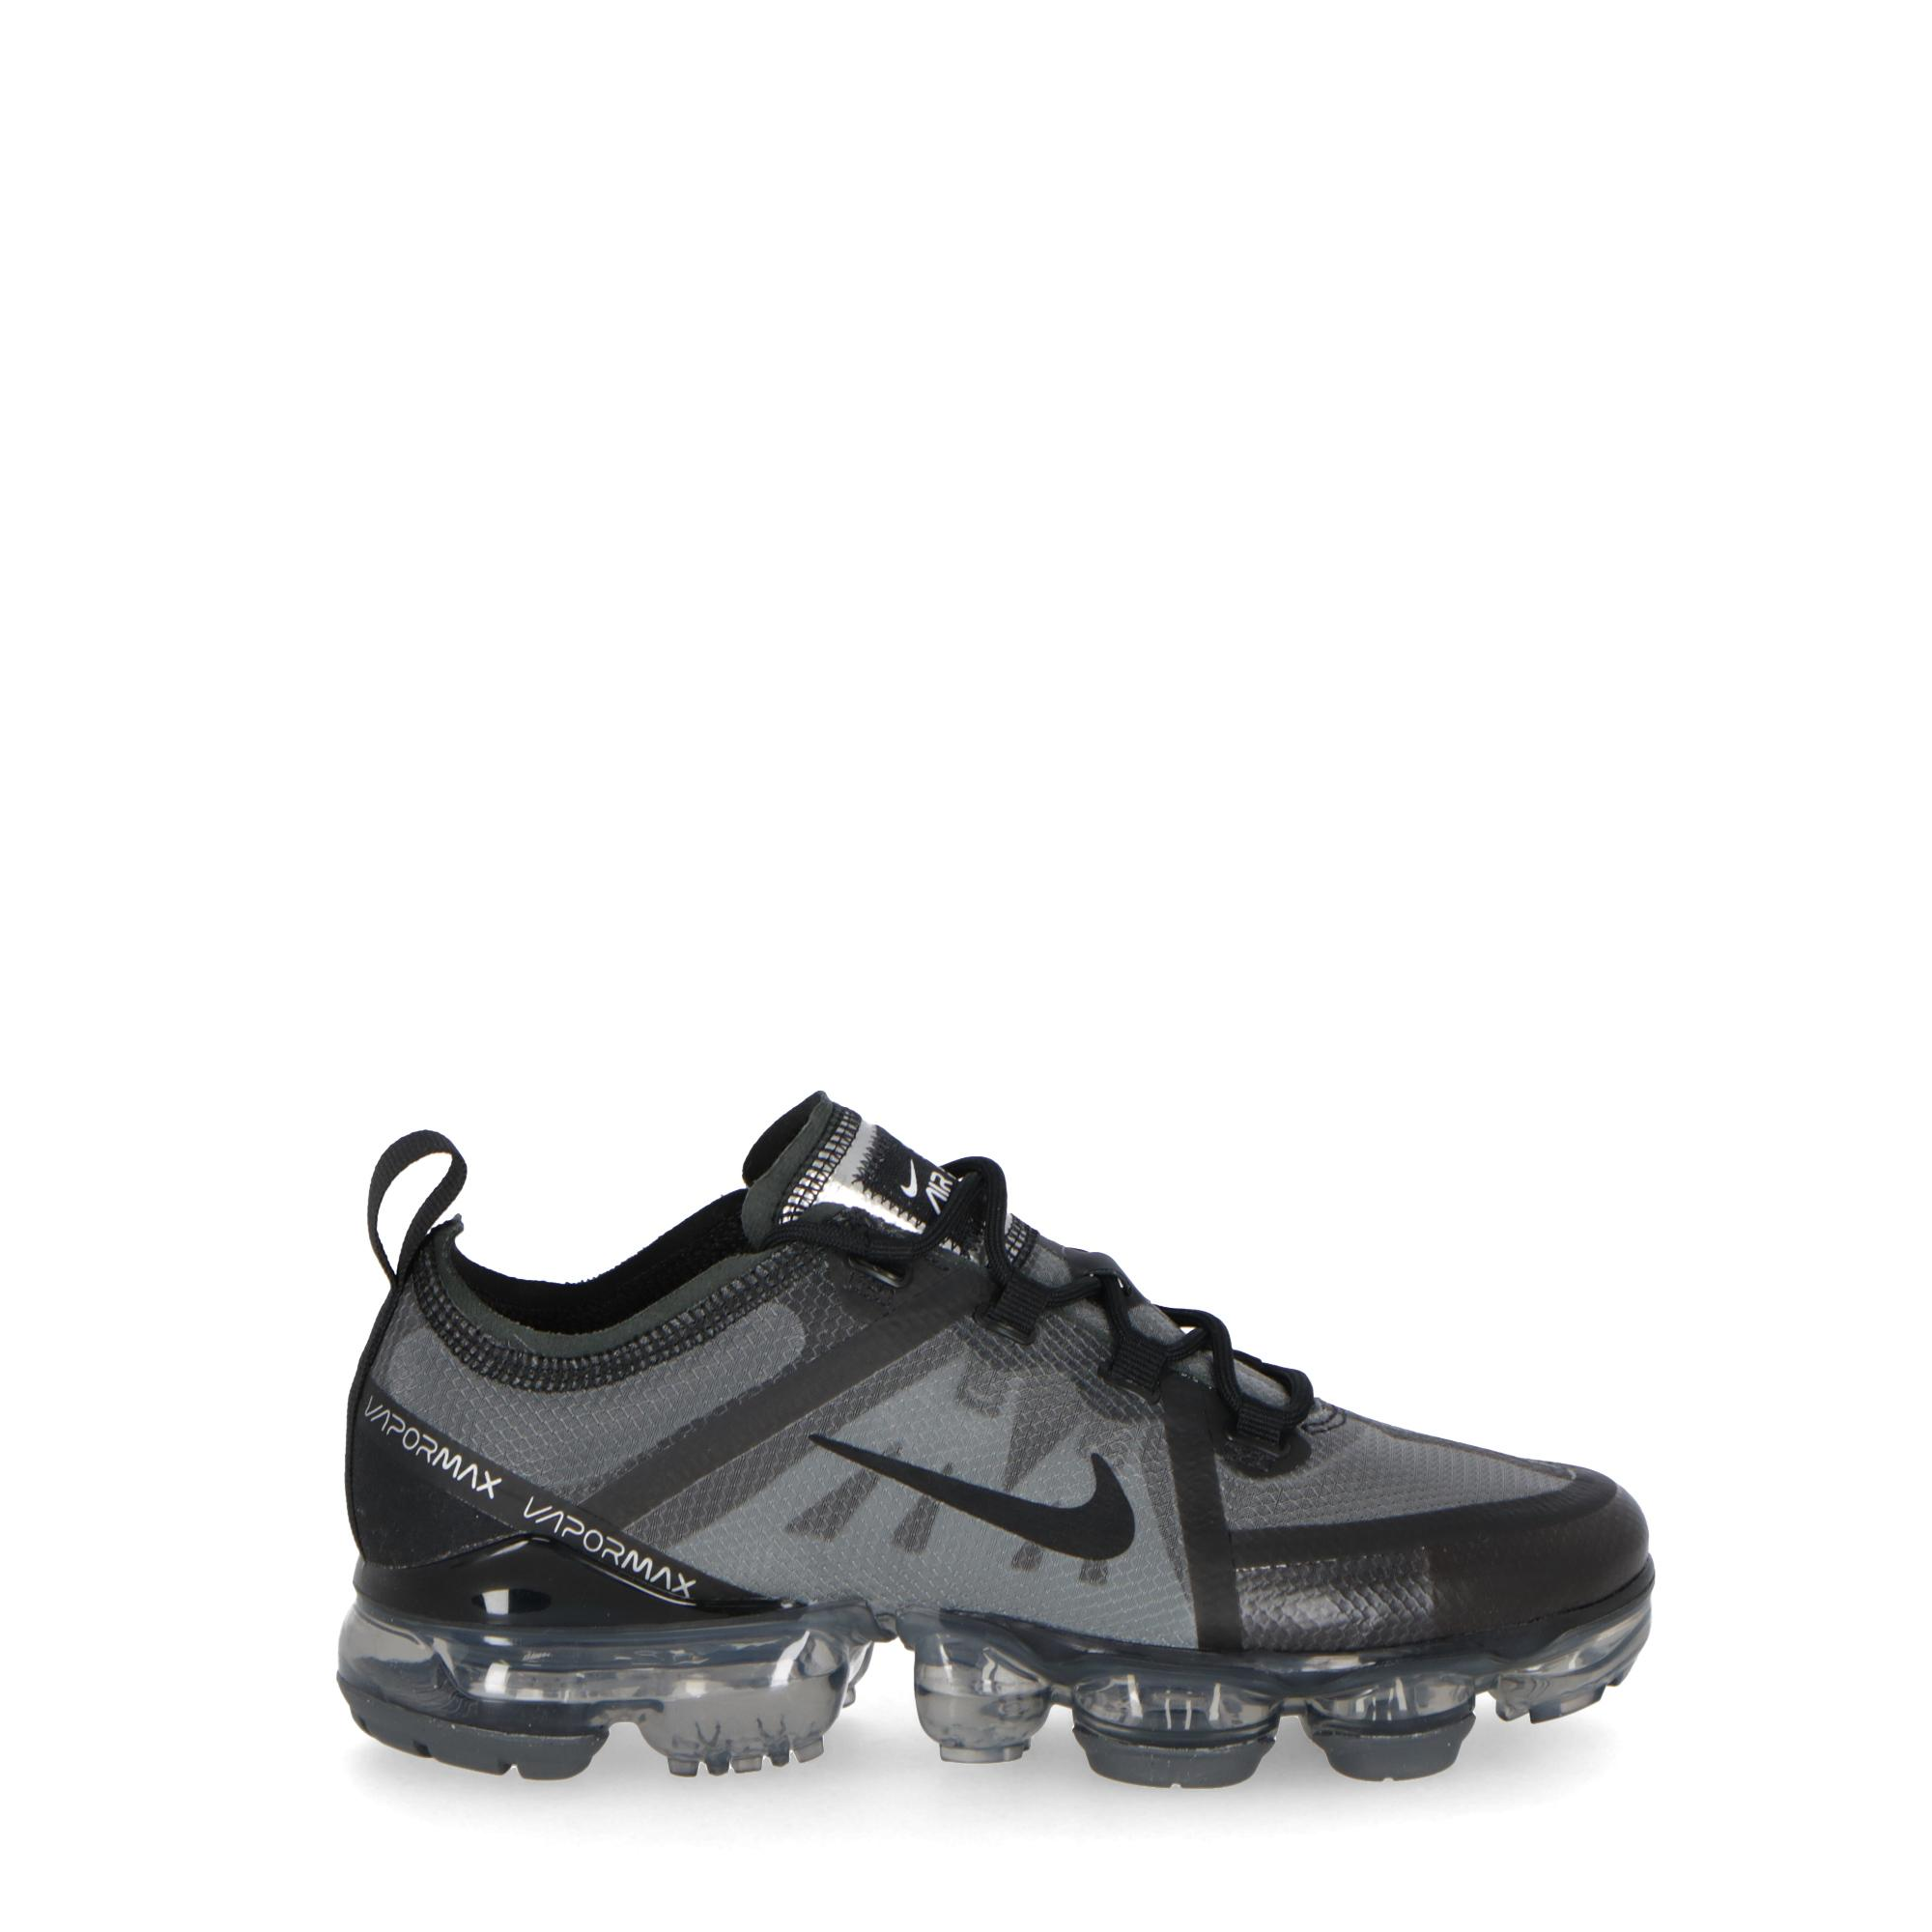 39dcfda7796 Nike Air Vapormax 2019 (gs) - Kids Black Black